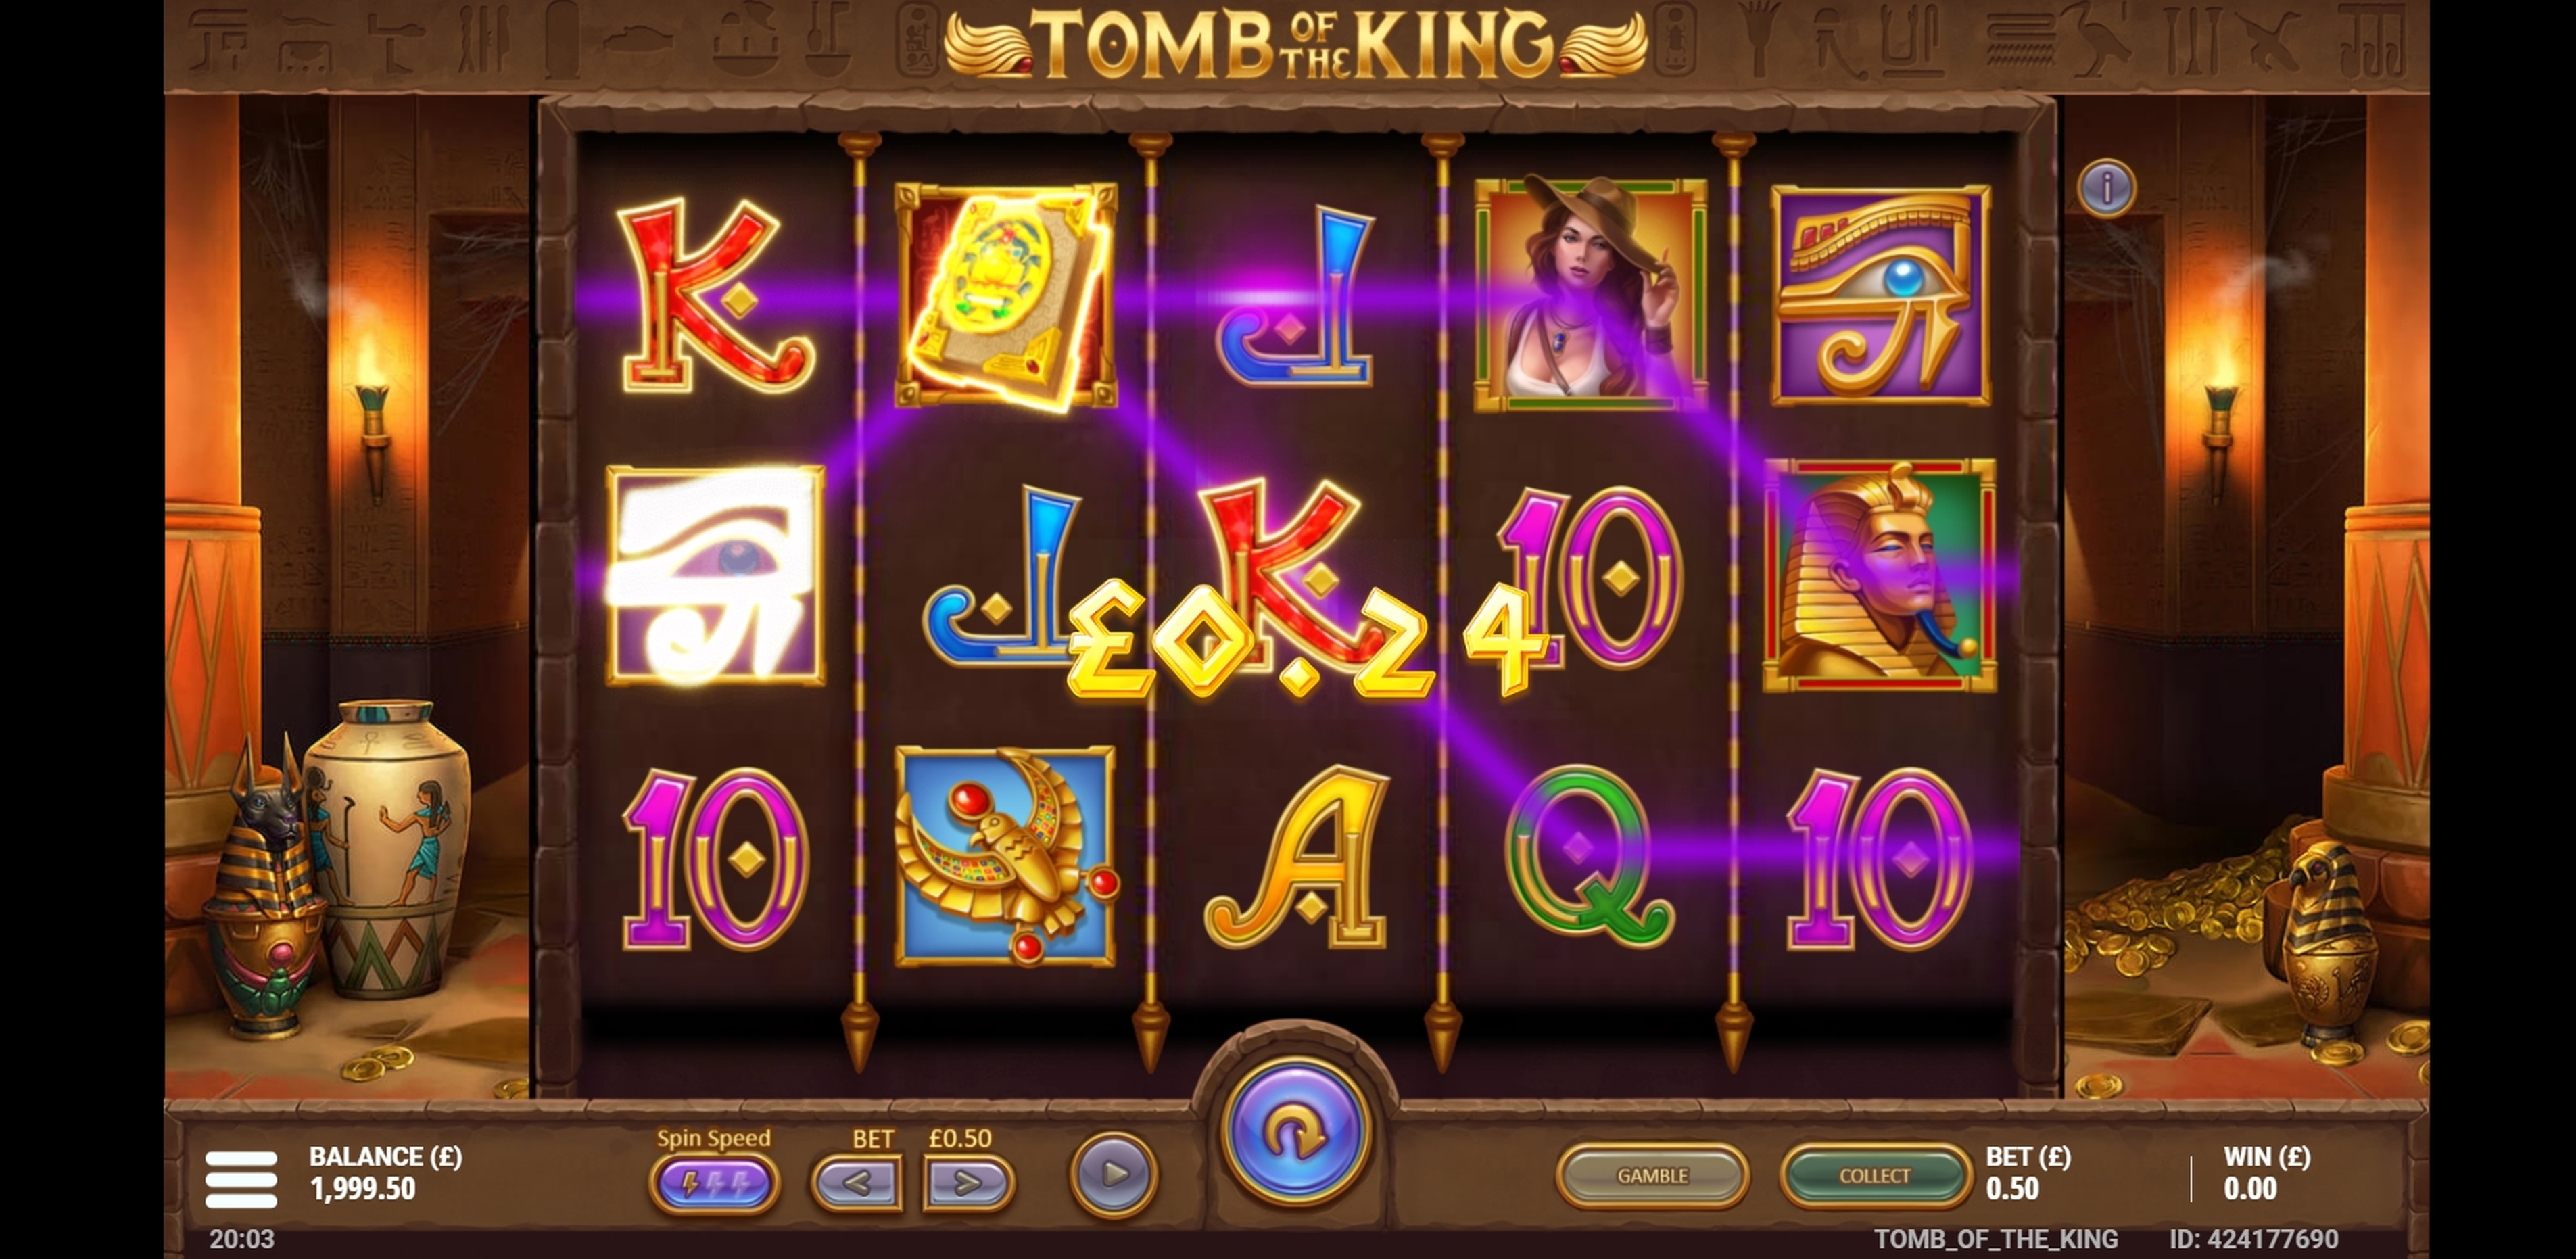 Win Money in Tomb of the King Free Slot Game by Gluck Games